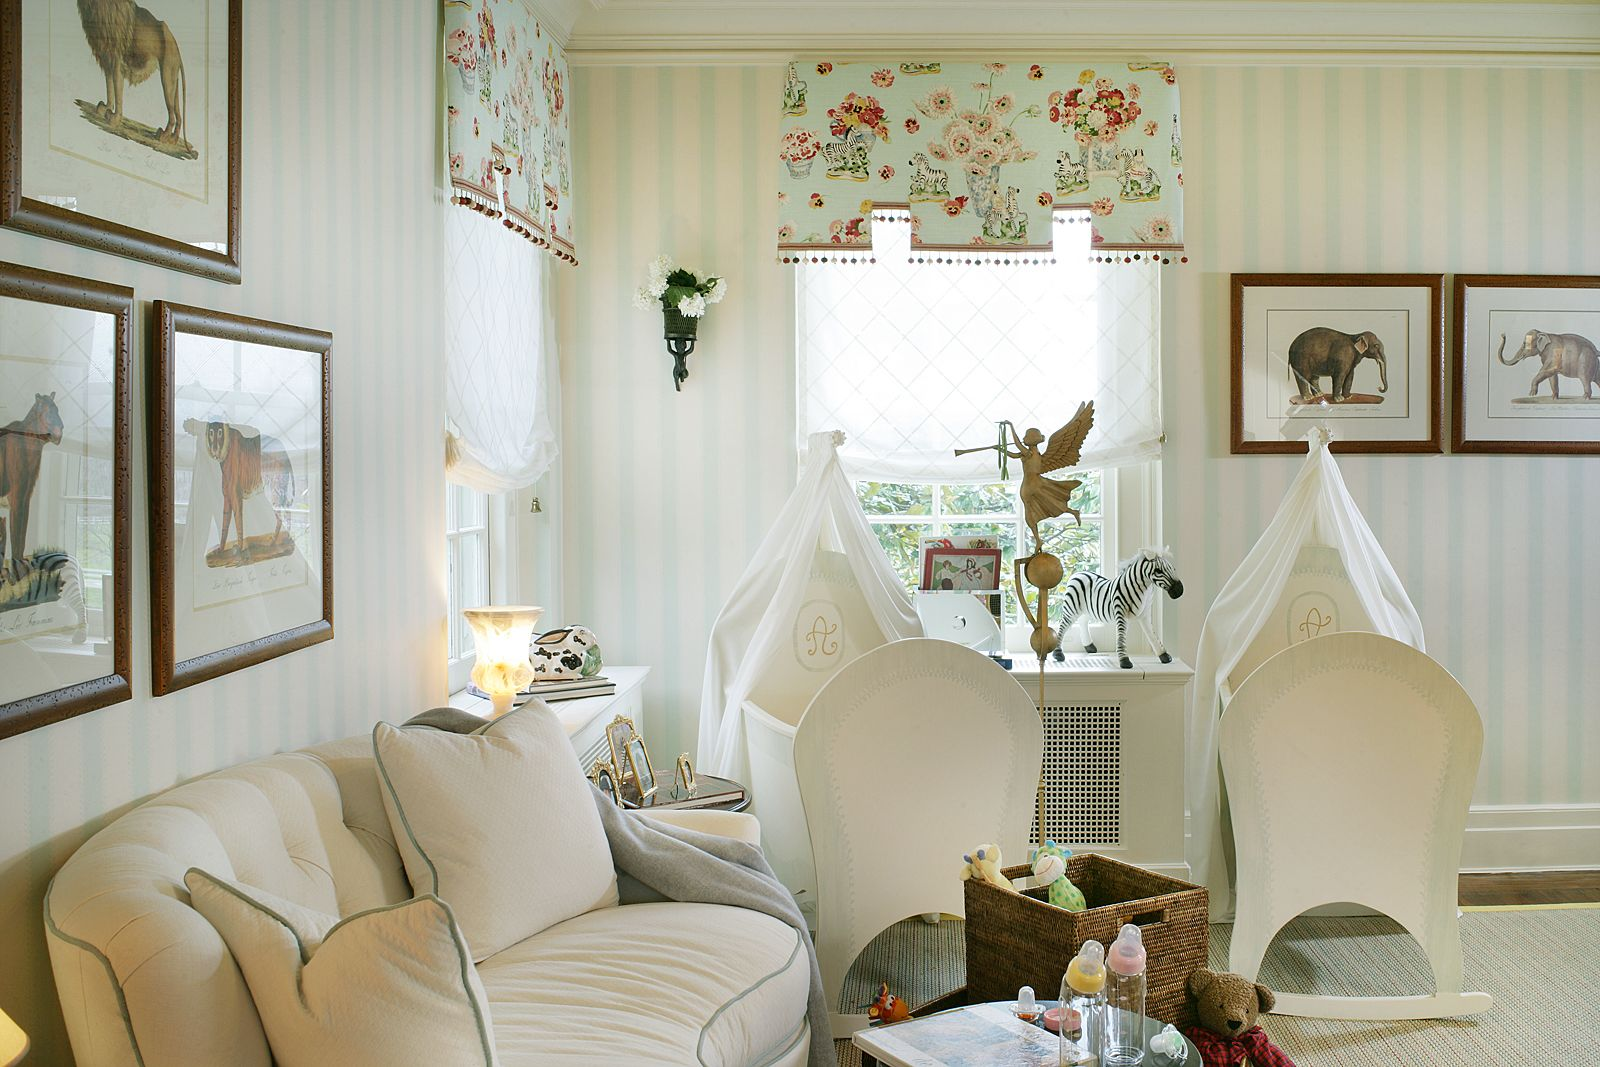 Pin By Fine Homes By Tina Hare On Twin Nursery Baby Room Design Baby Room Decor Twin Baby Rooms #nursery #in #living #room